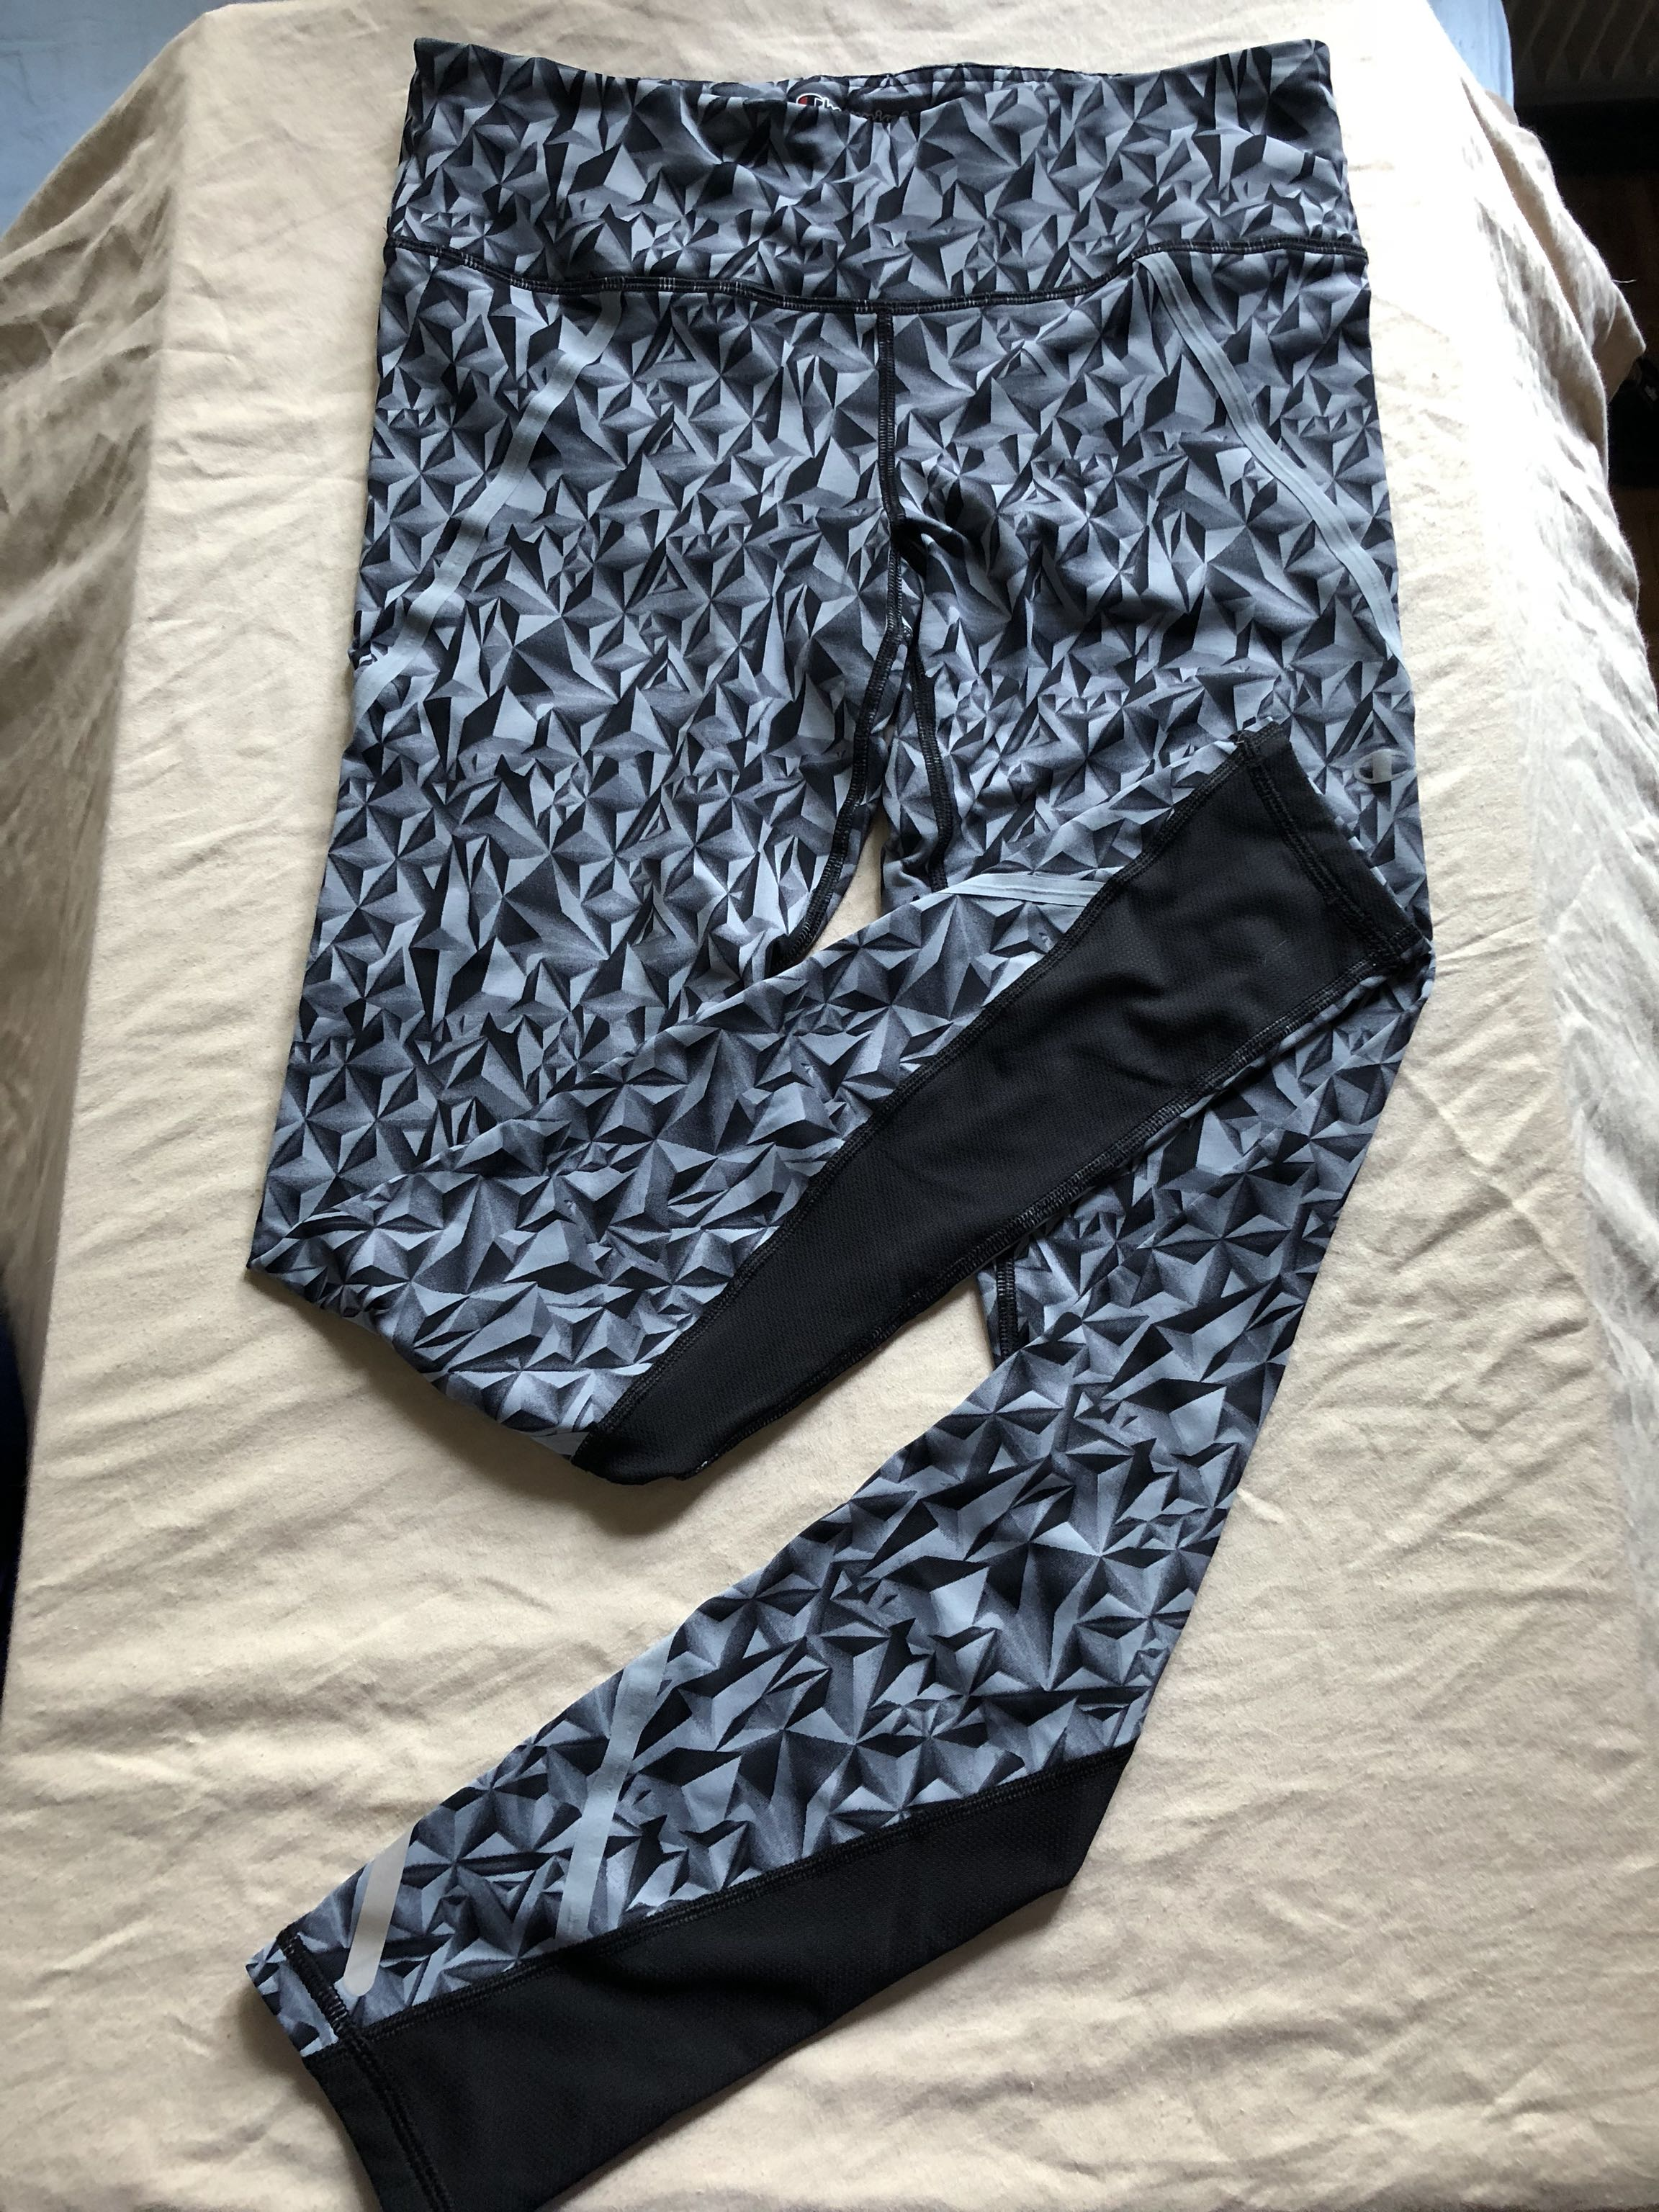 Leggings!